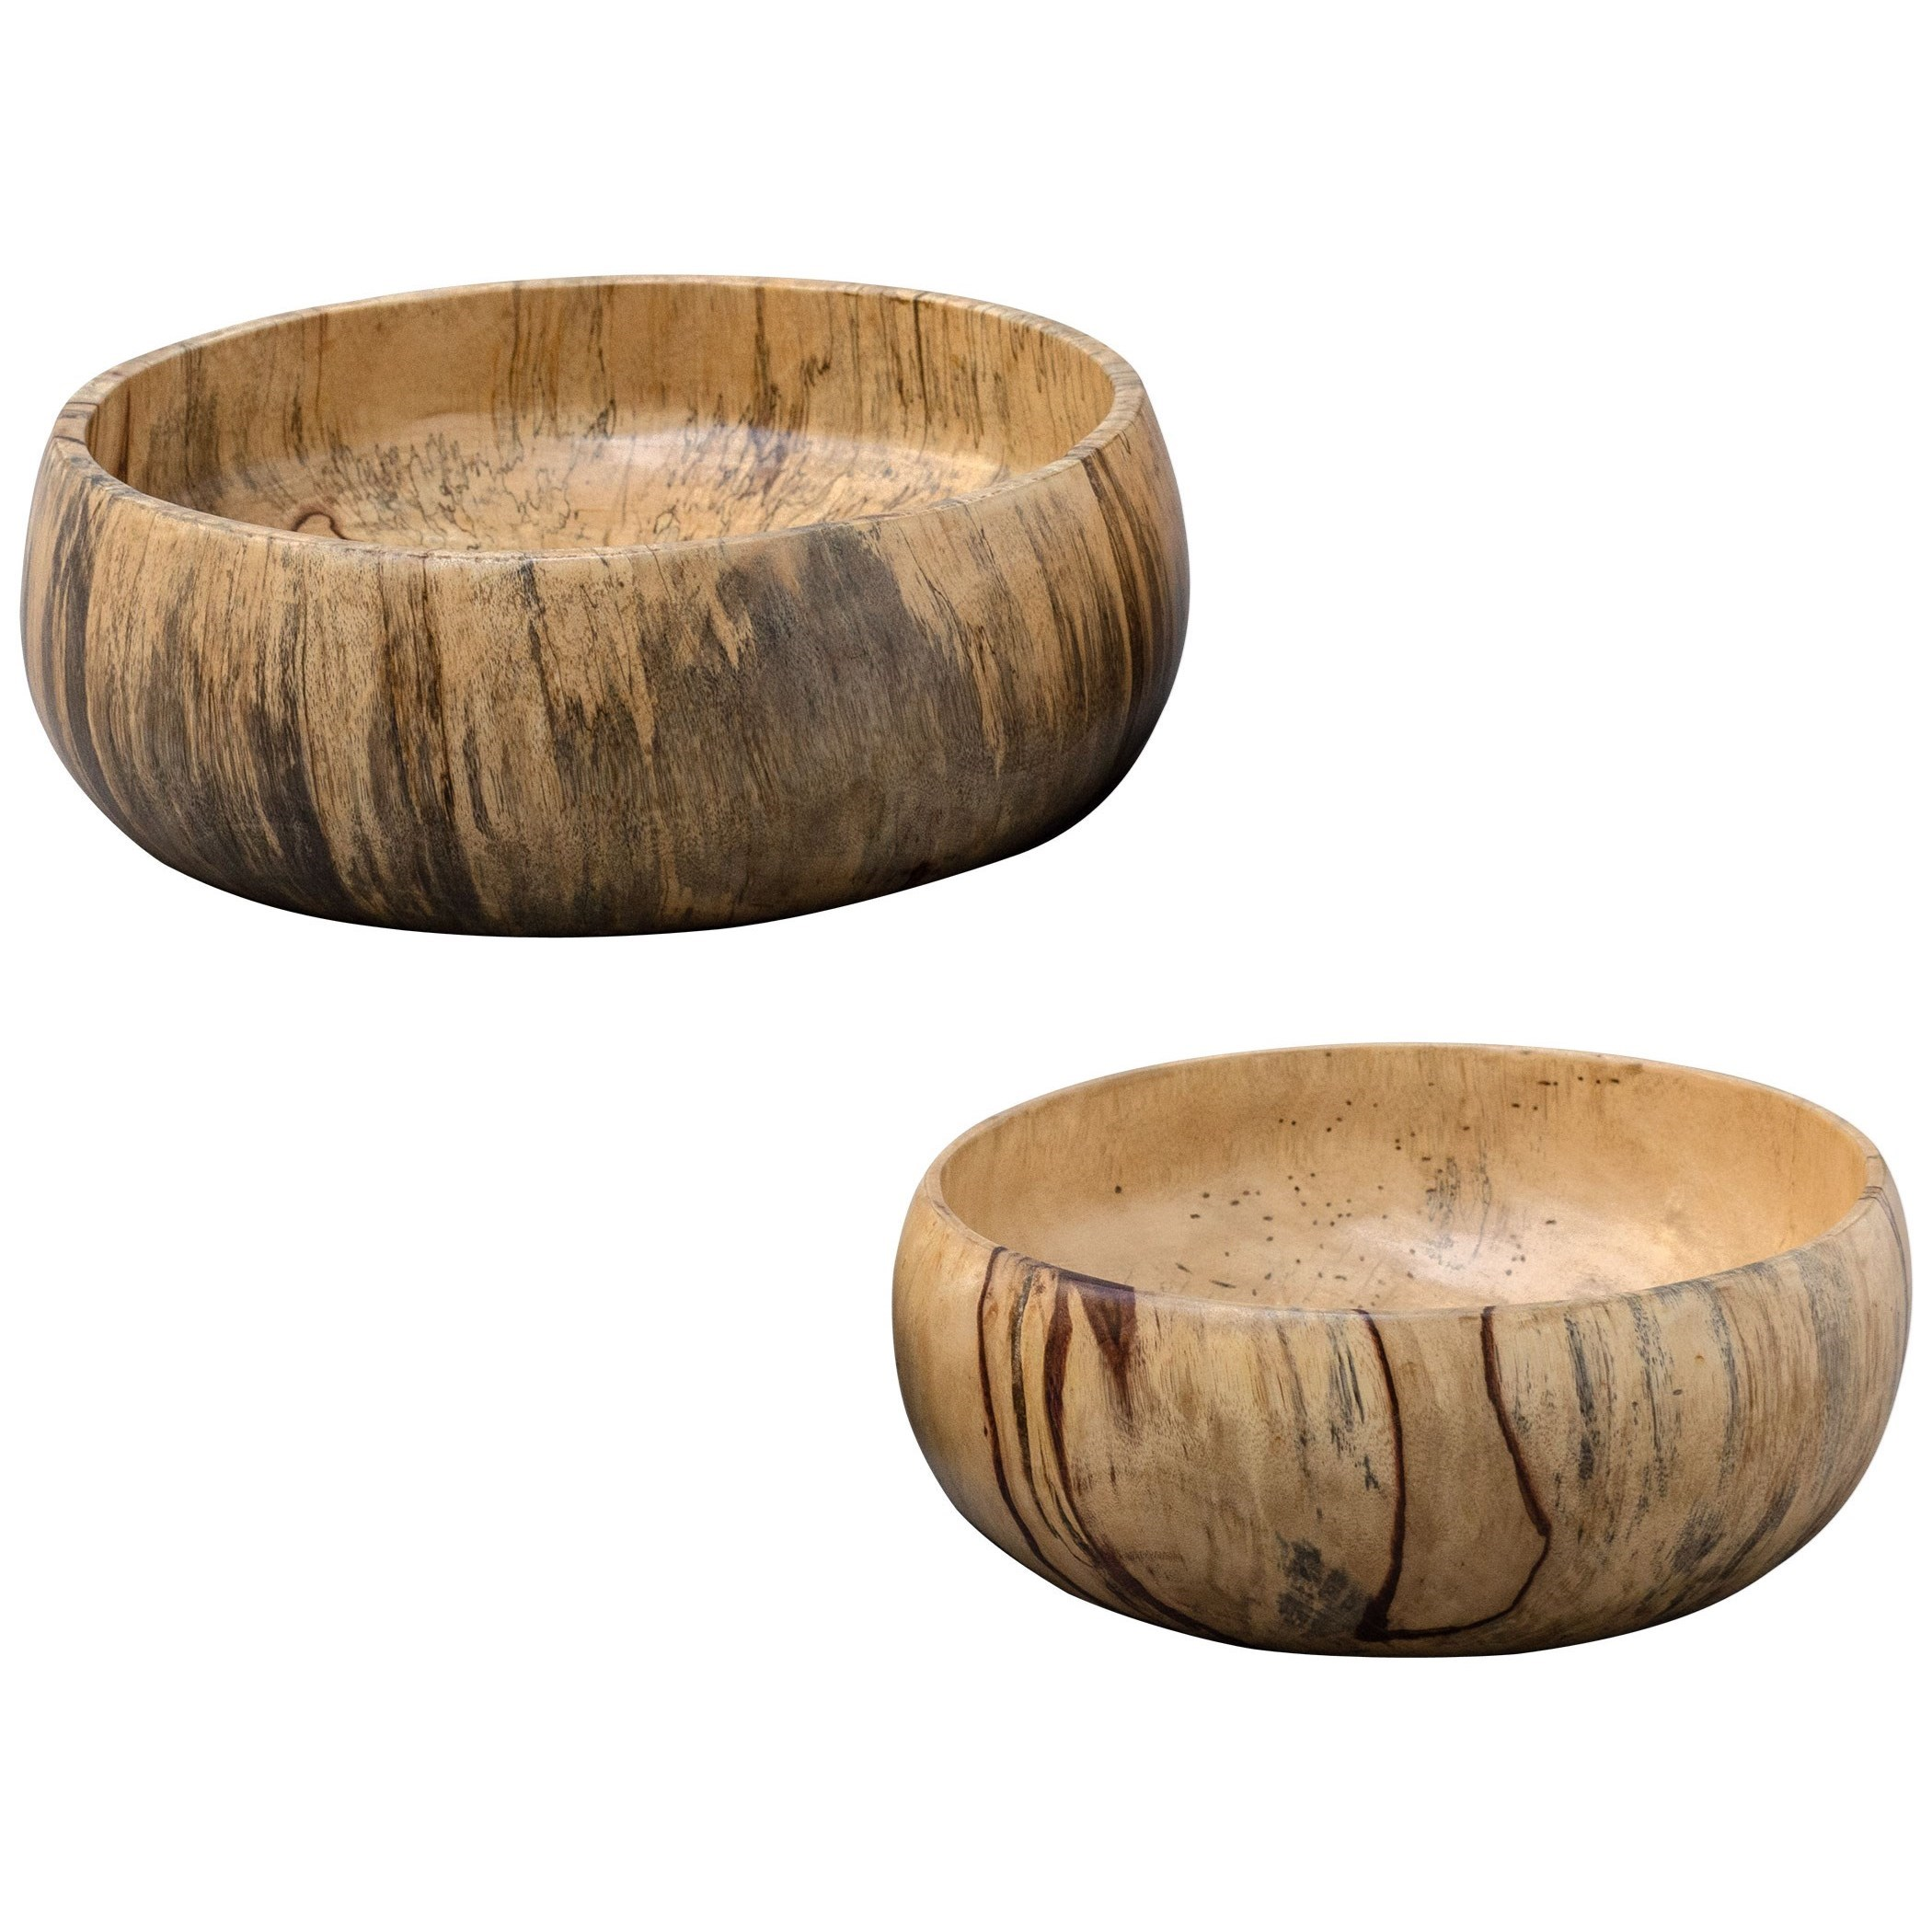 Accessories Tamarind Wood Bowls, S/2 by Uttermost at Del Sol Furniture